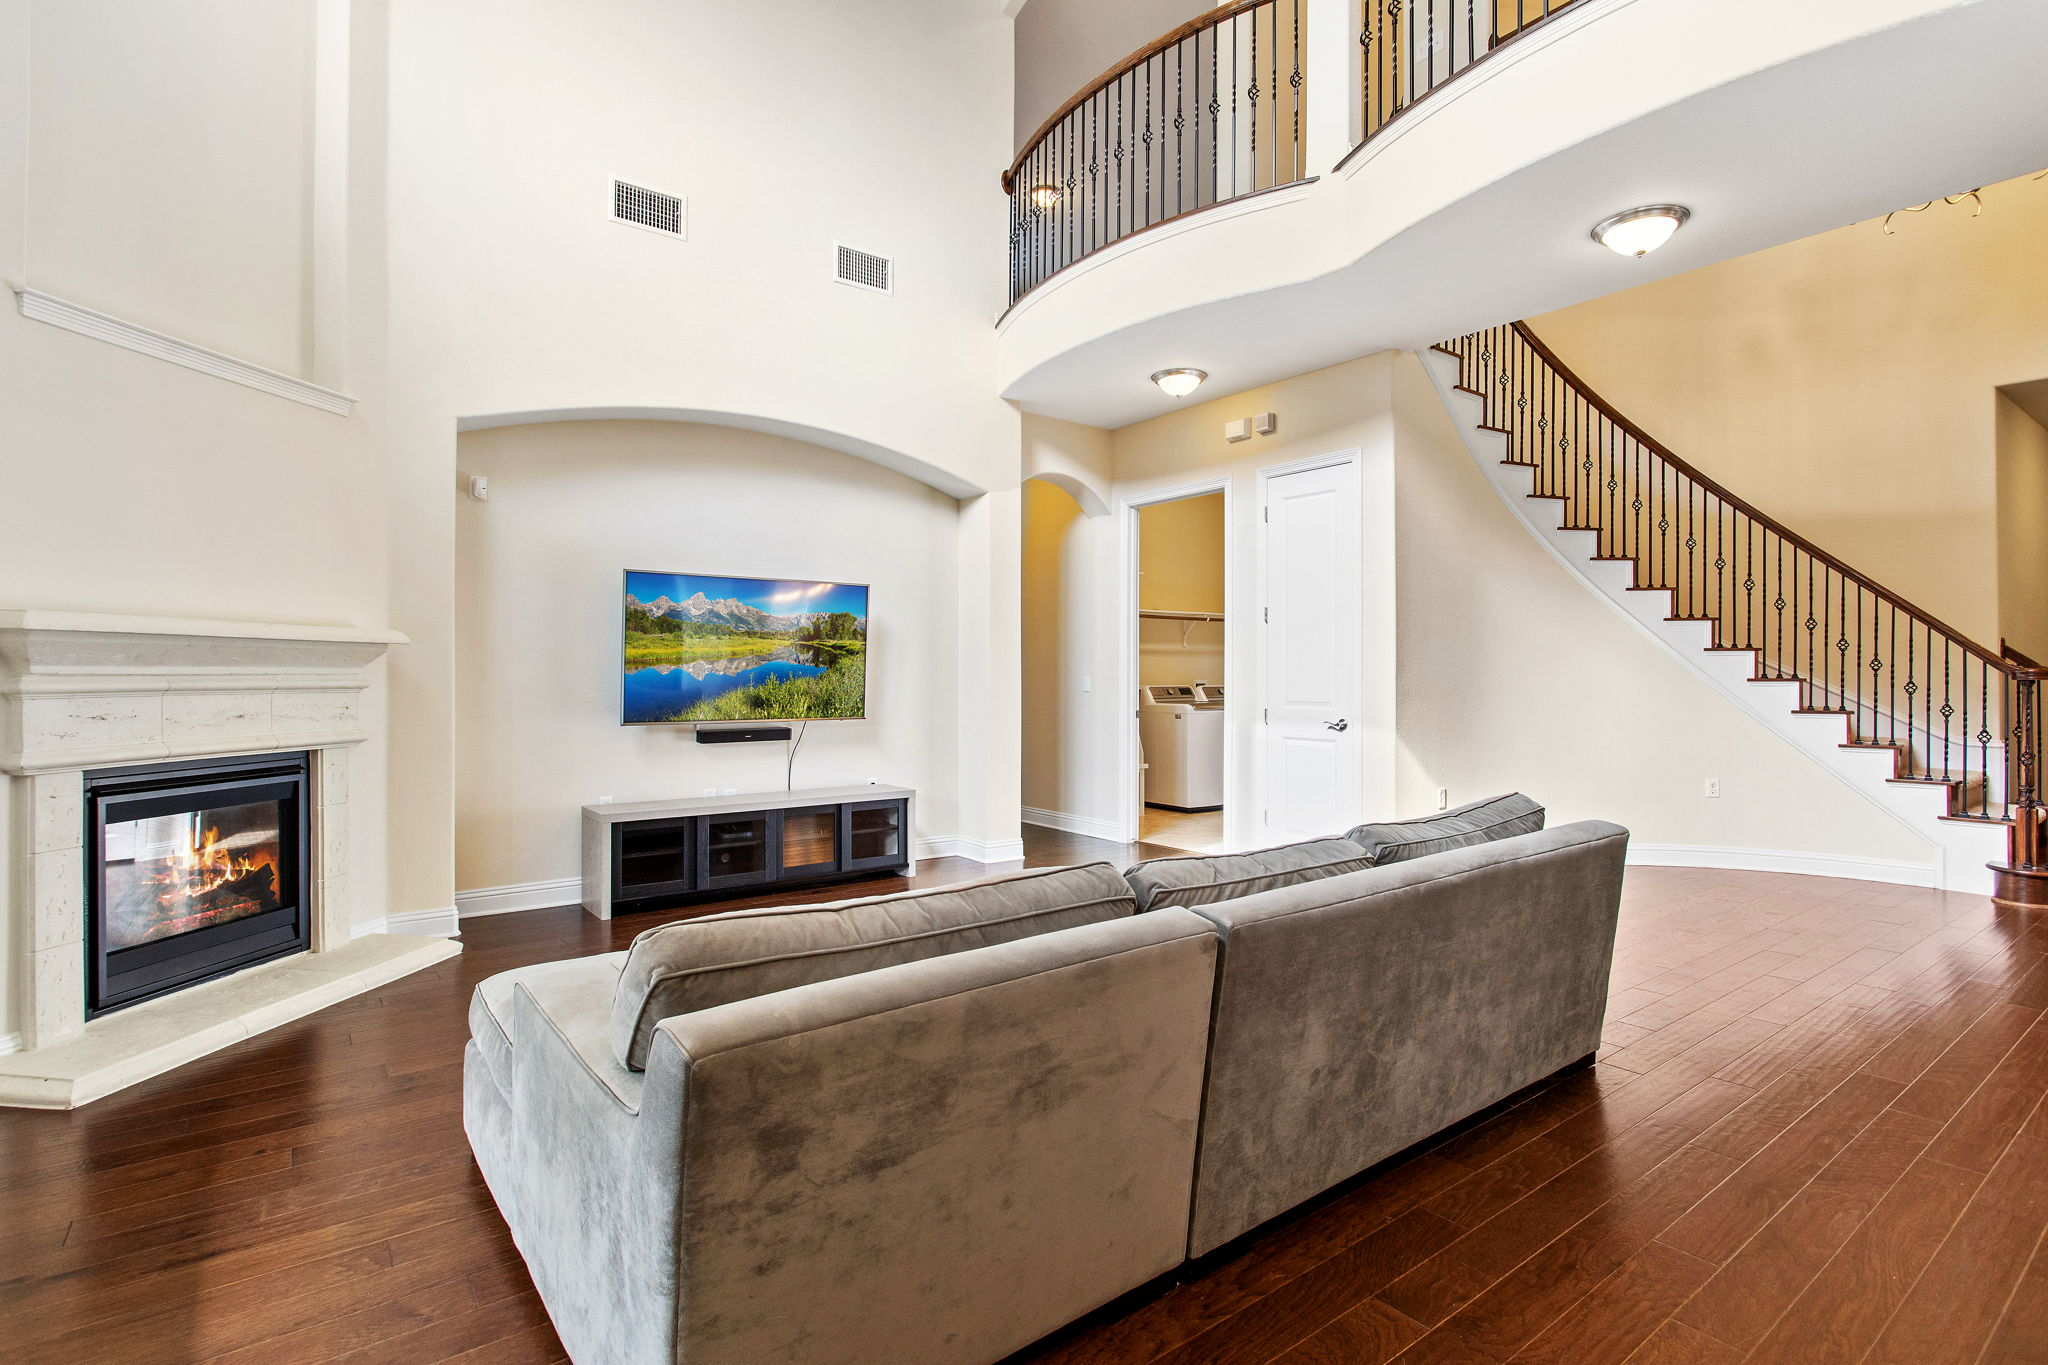 2-story ceiling height above family room